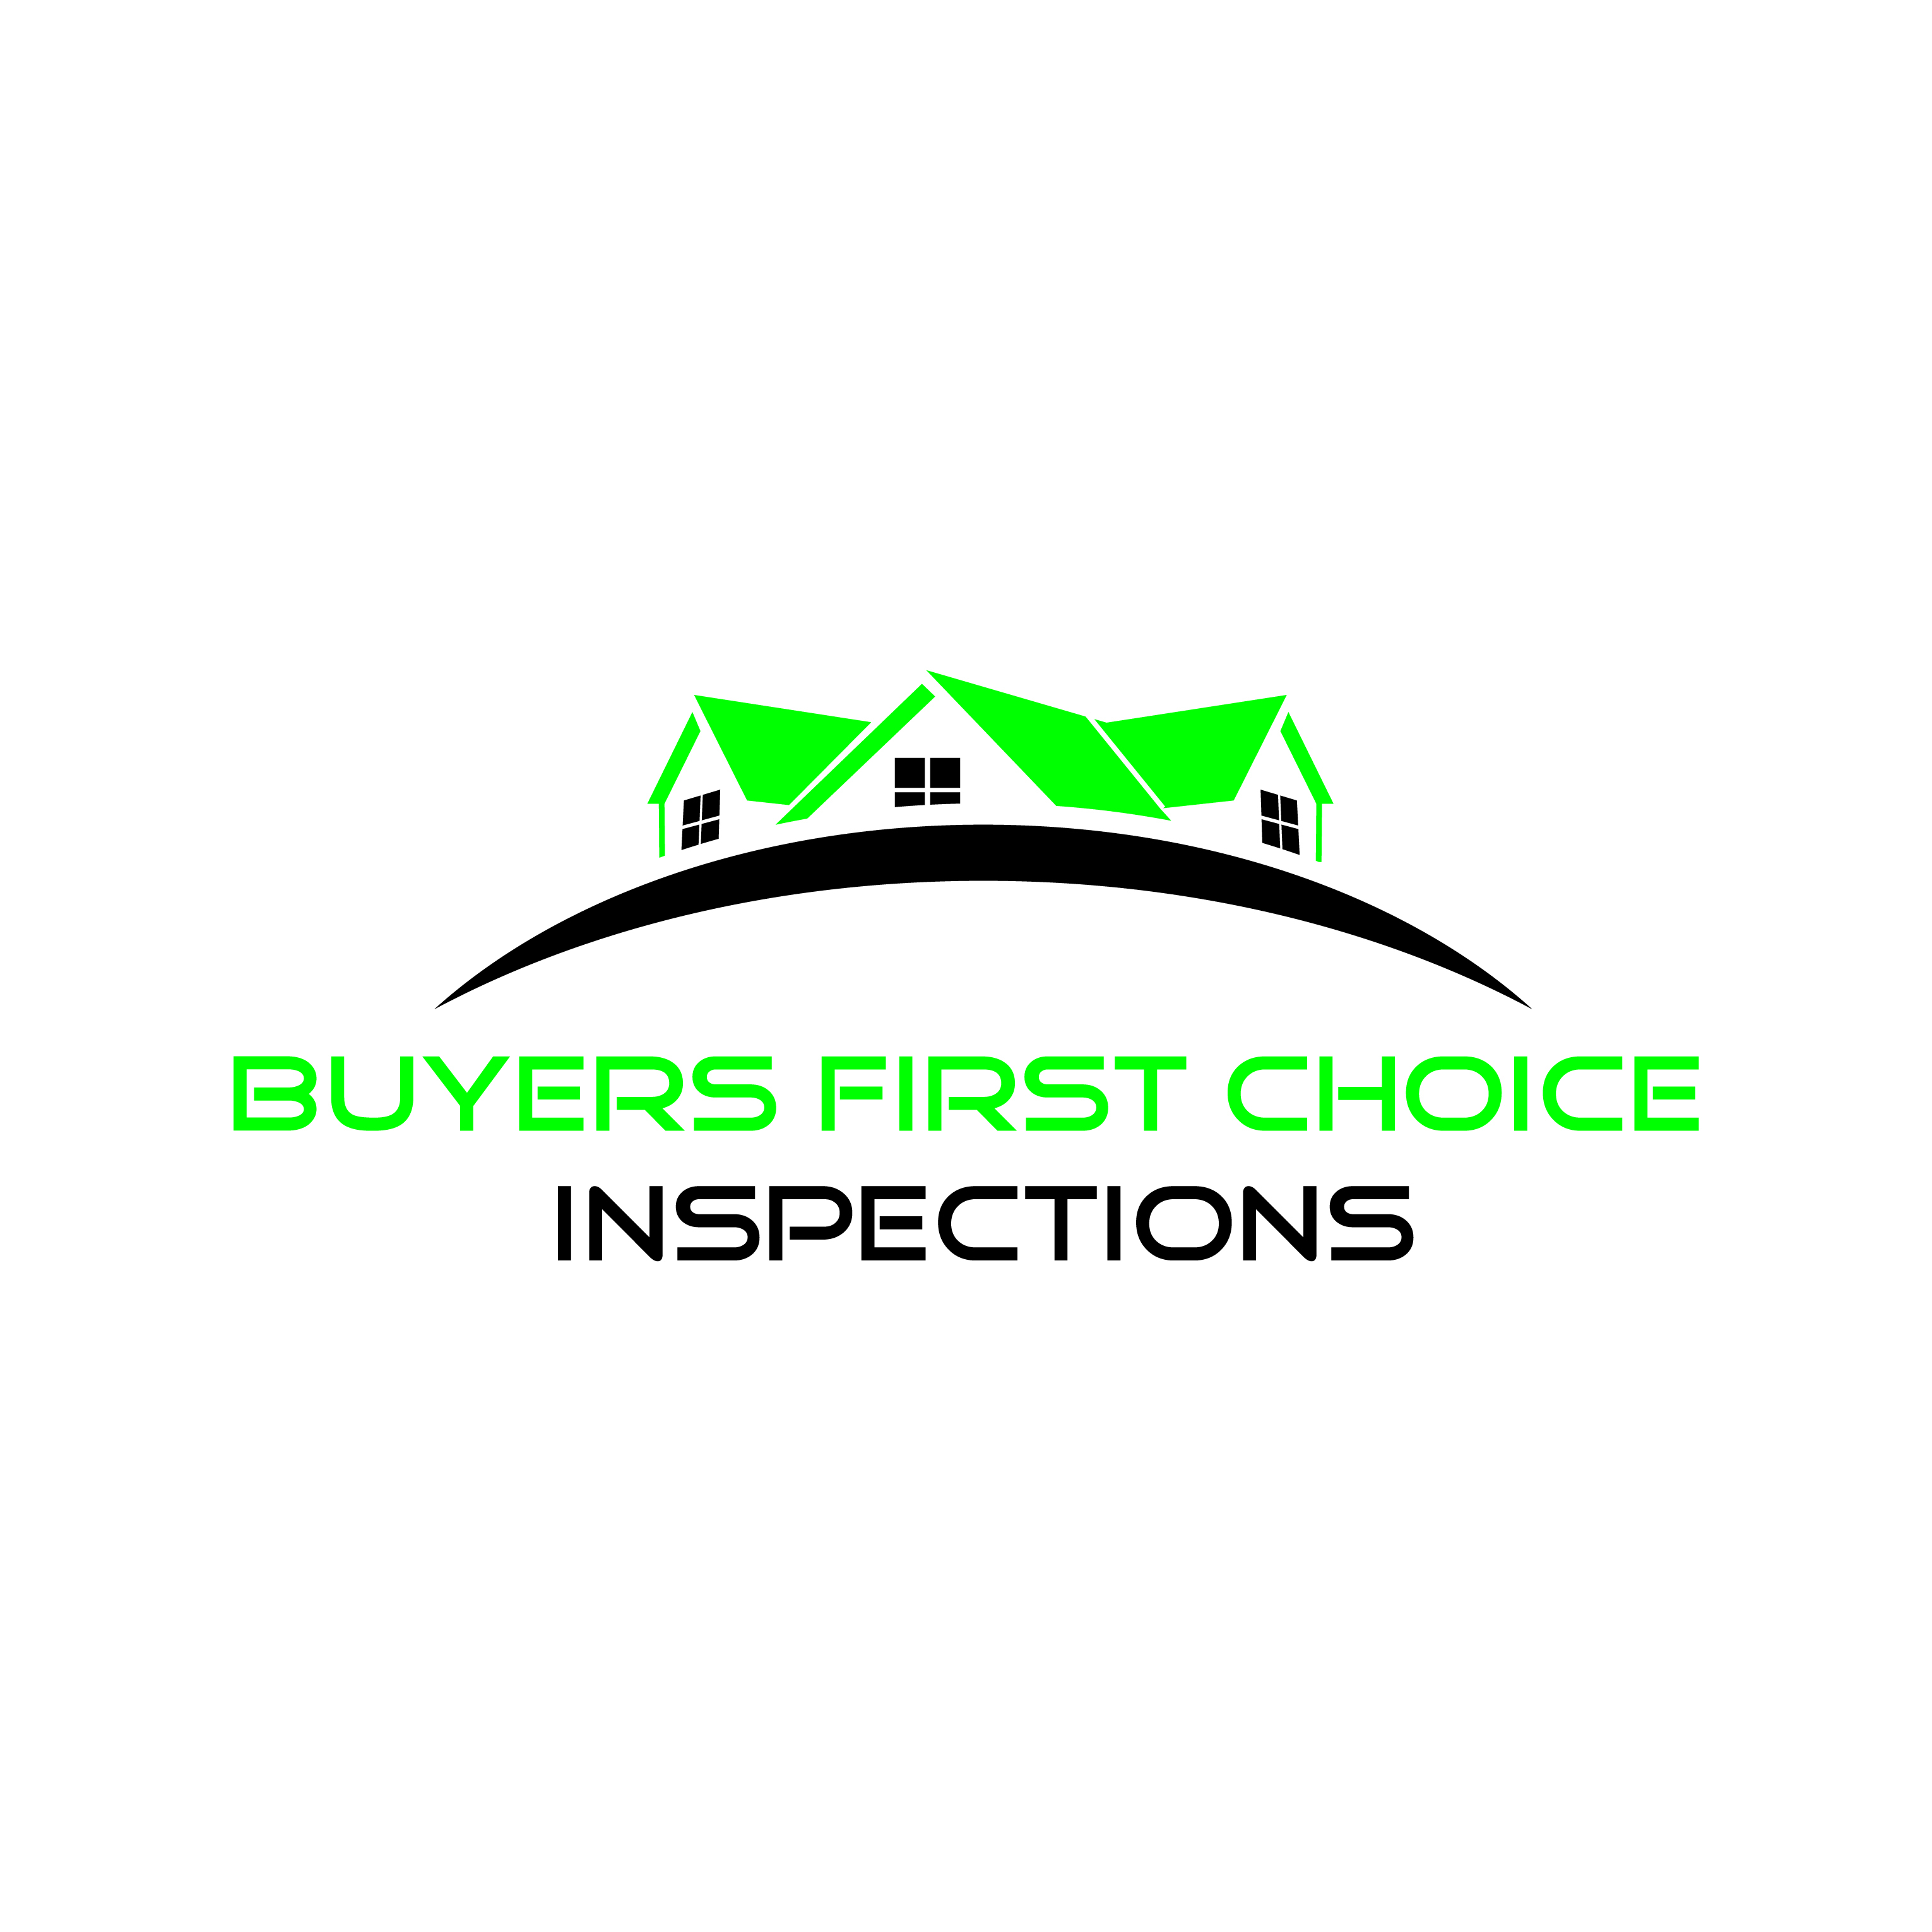 Buyers First Choice Inspections